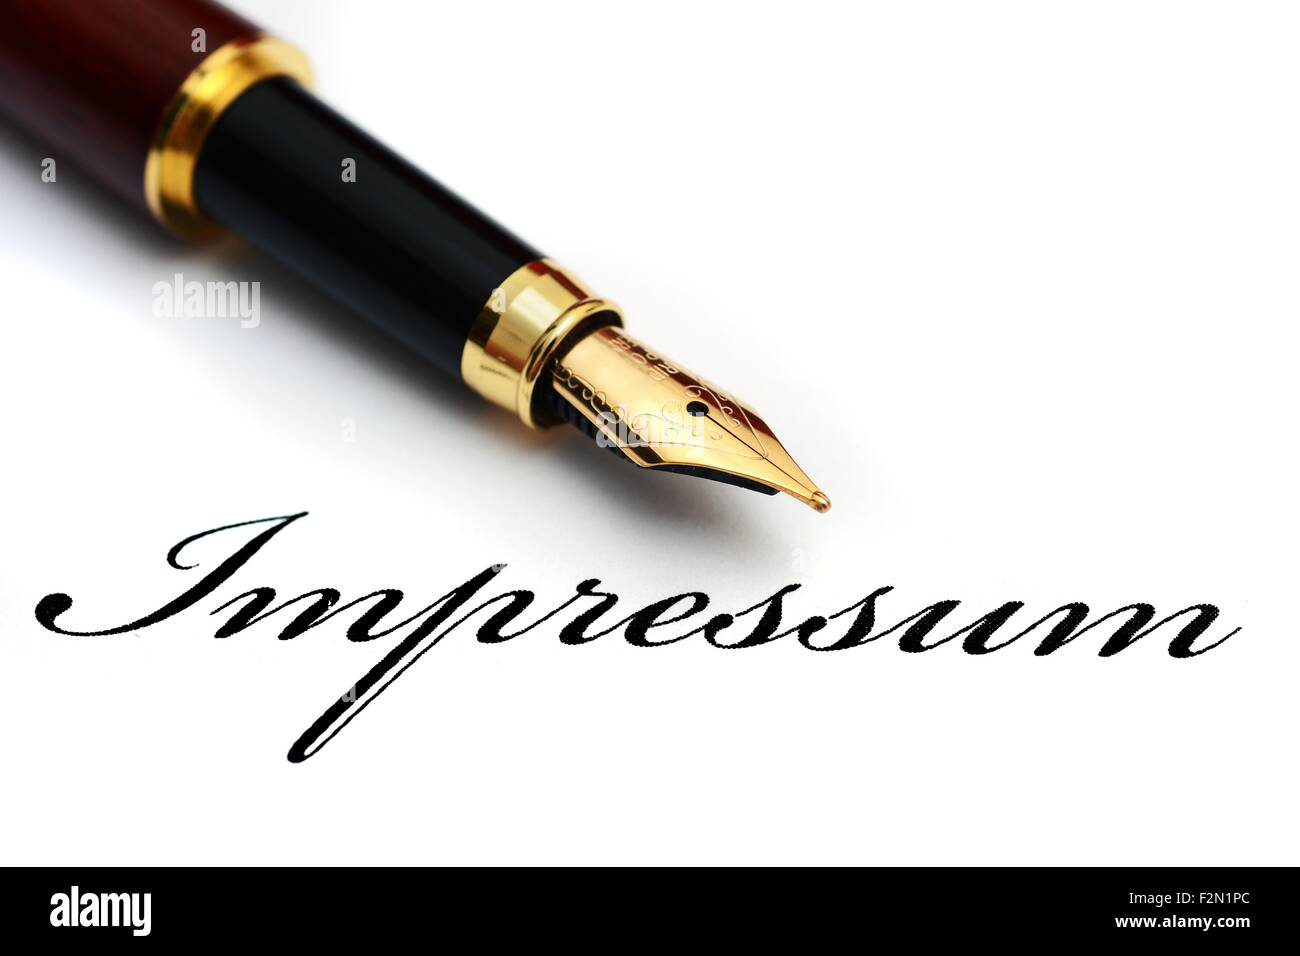 Impressum - t's the term Given to a Legally mandated statement of the ownership and authorship of a document - Stock Image